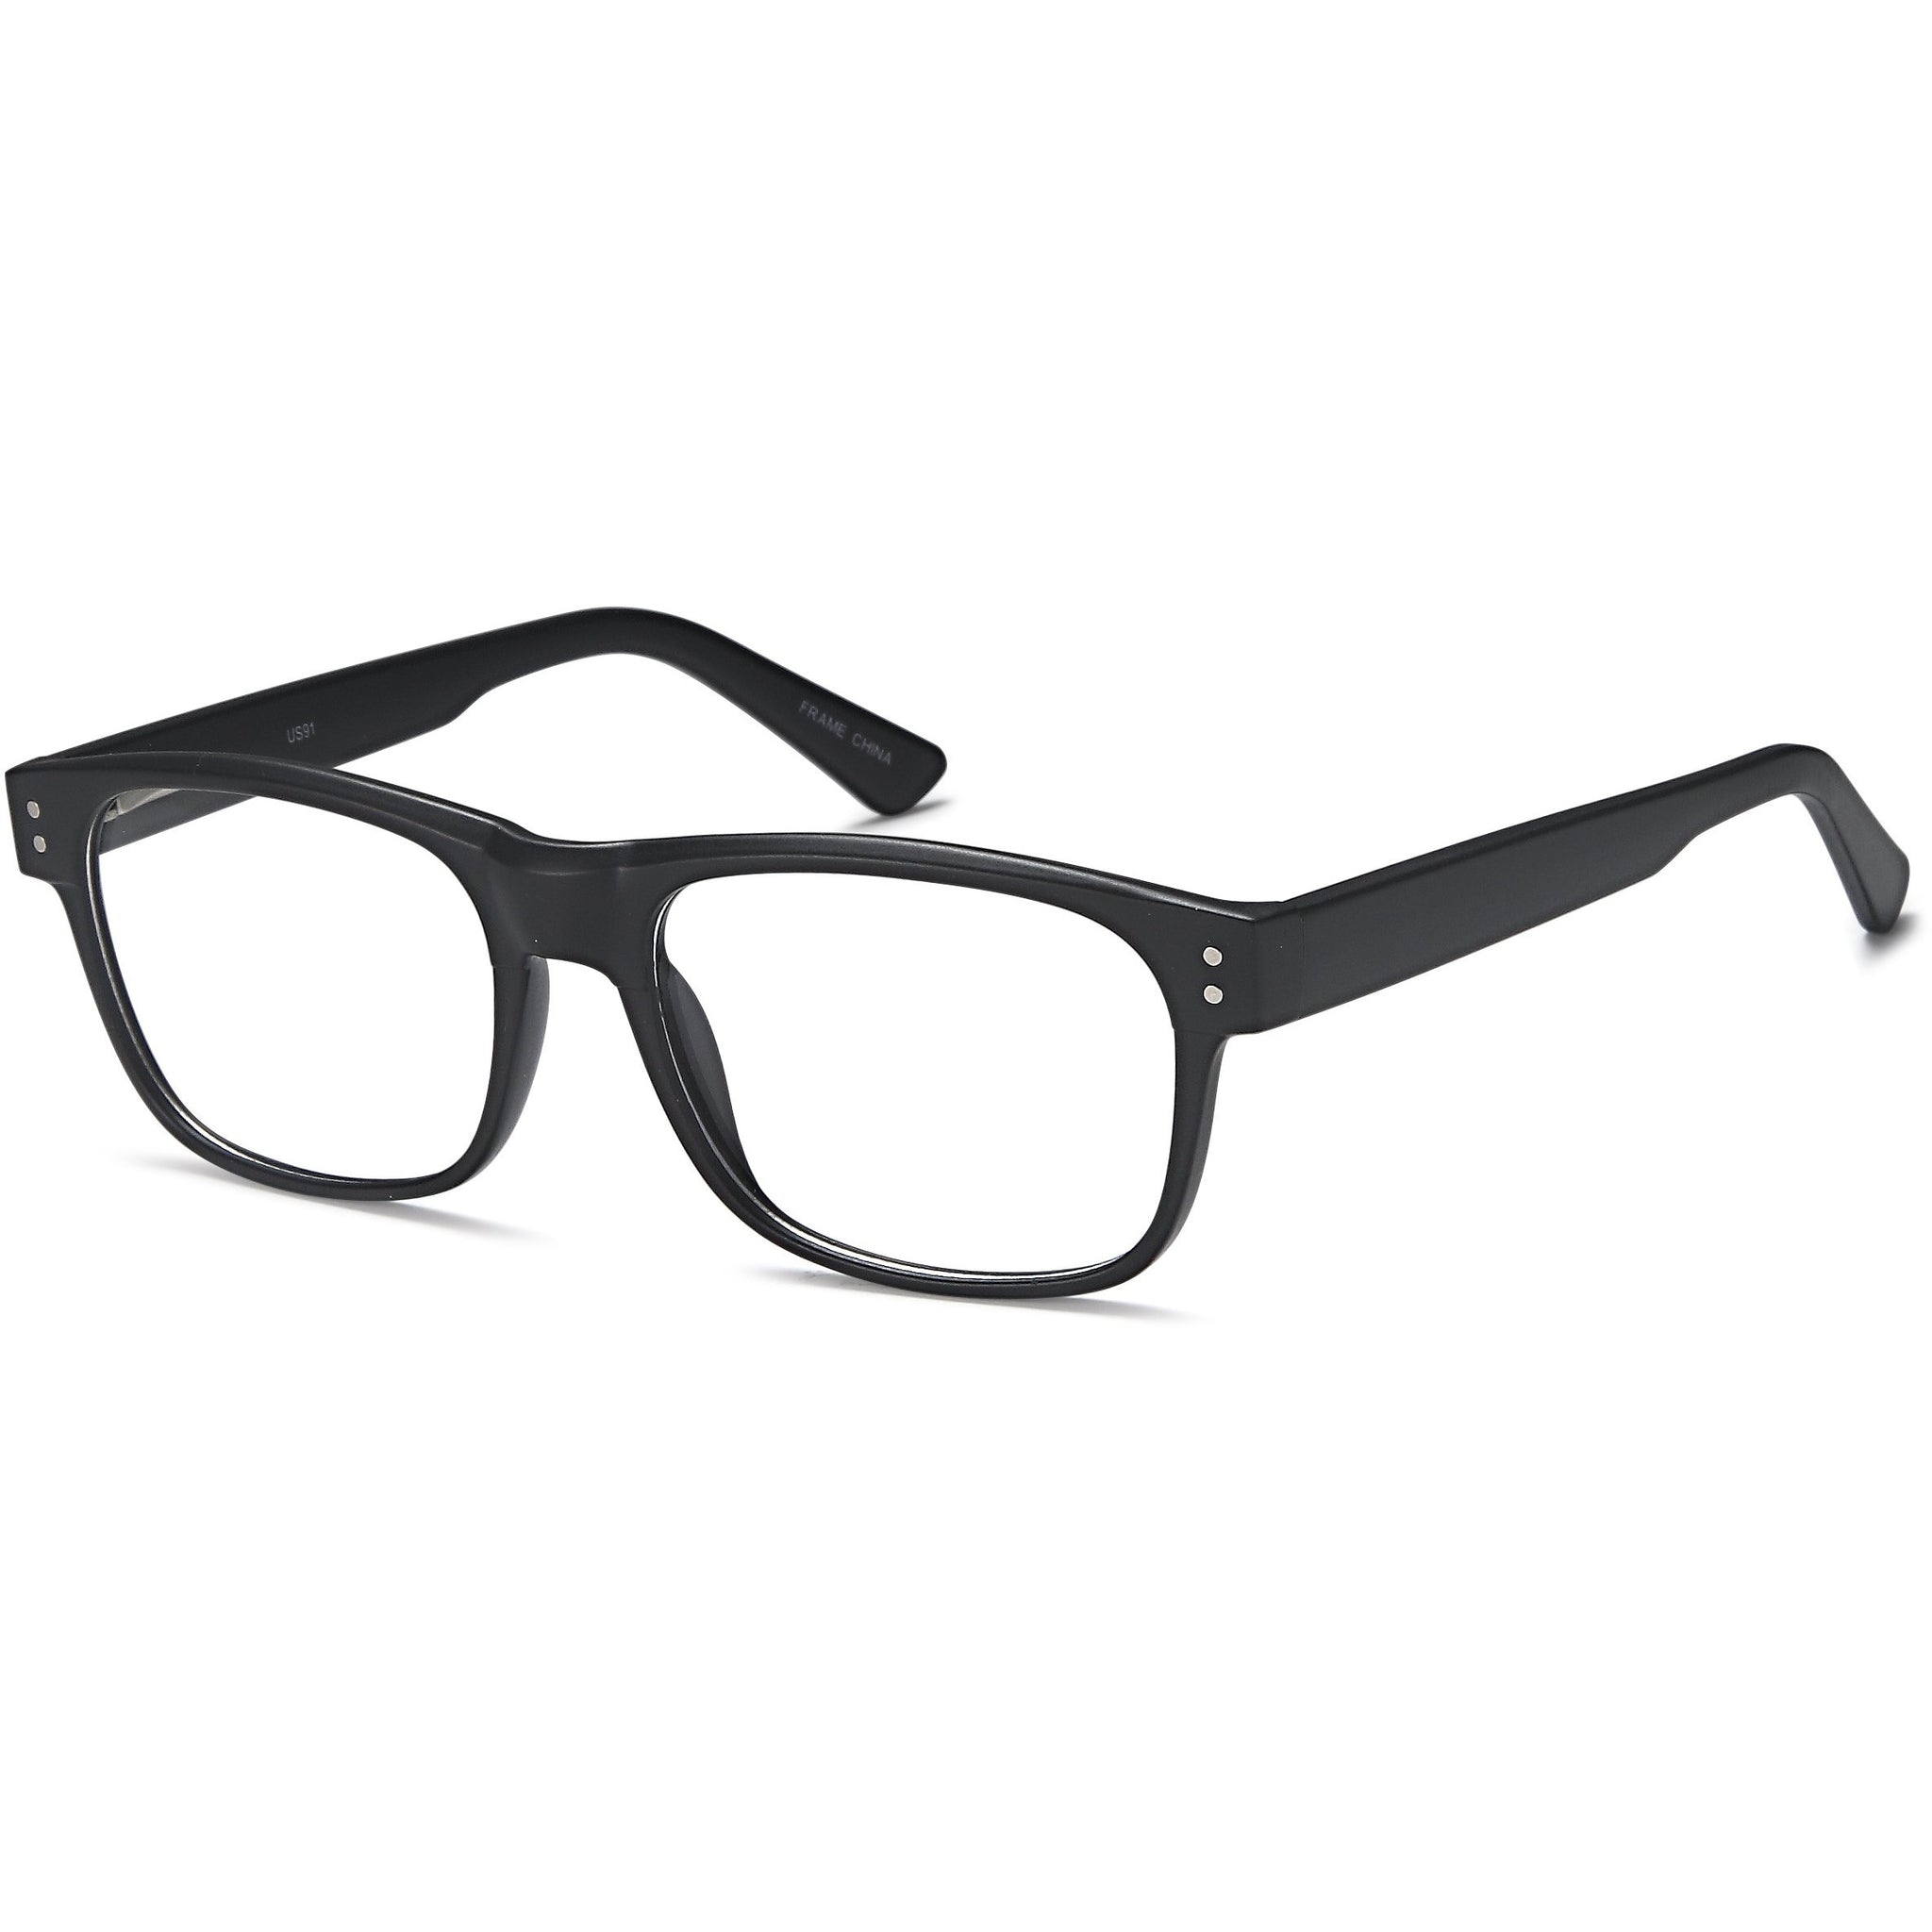 Camberwell by The Square Mile Prescription Eyeglasses Frame